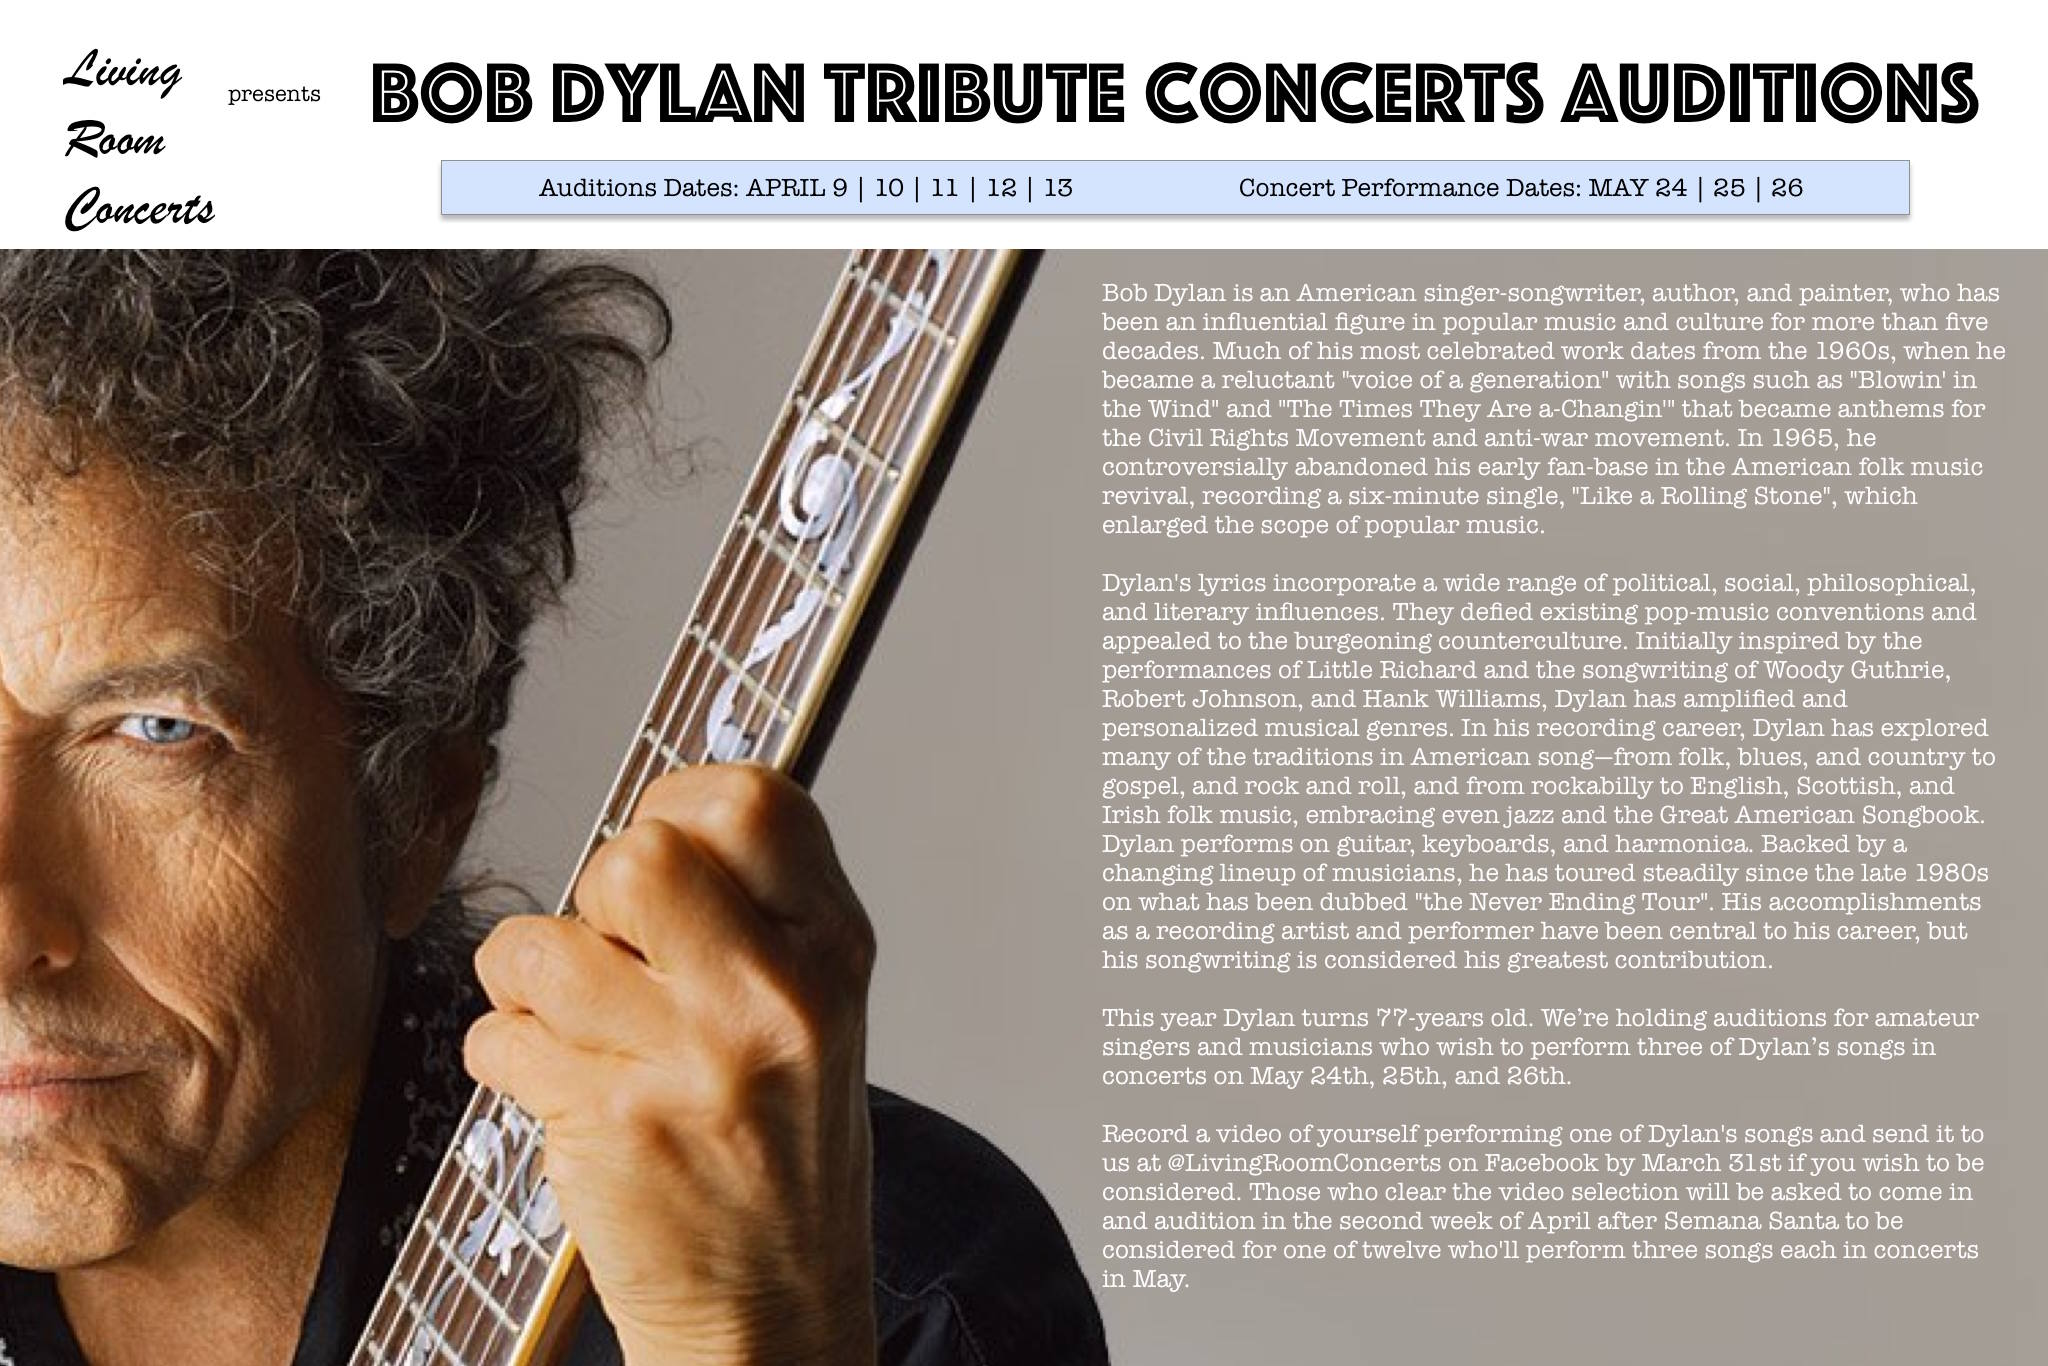 15 Feb to 31 Mar - LRC presents Bob Dylan Tribute Concerts Auditions